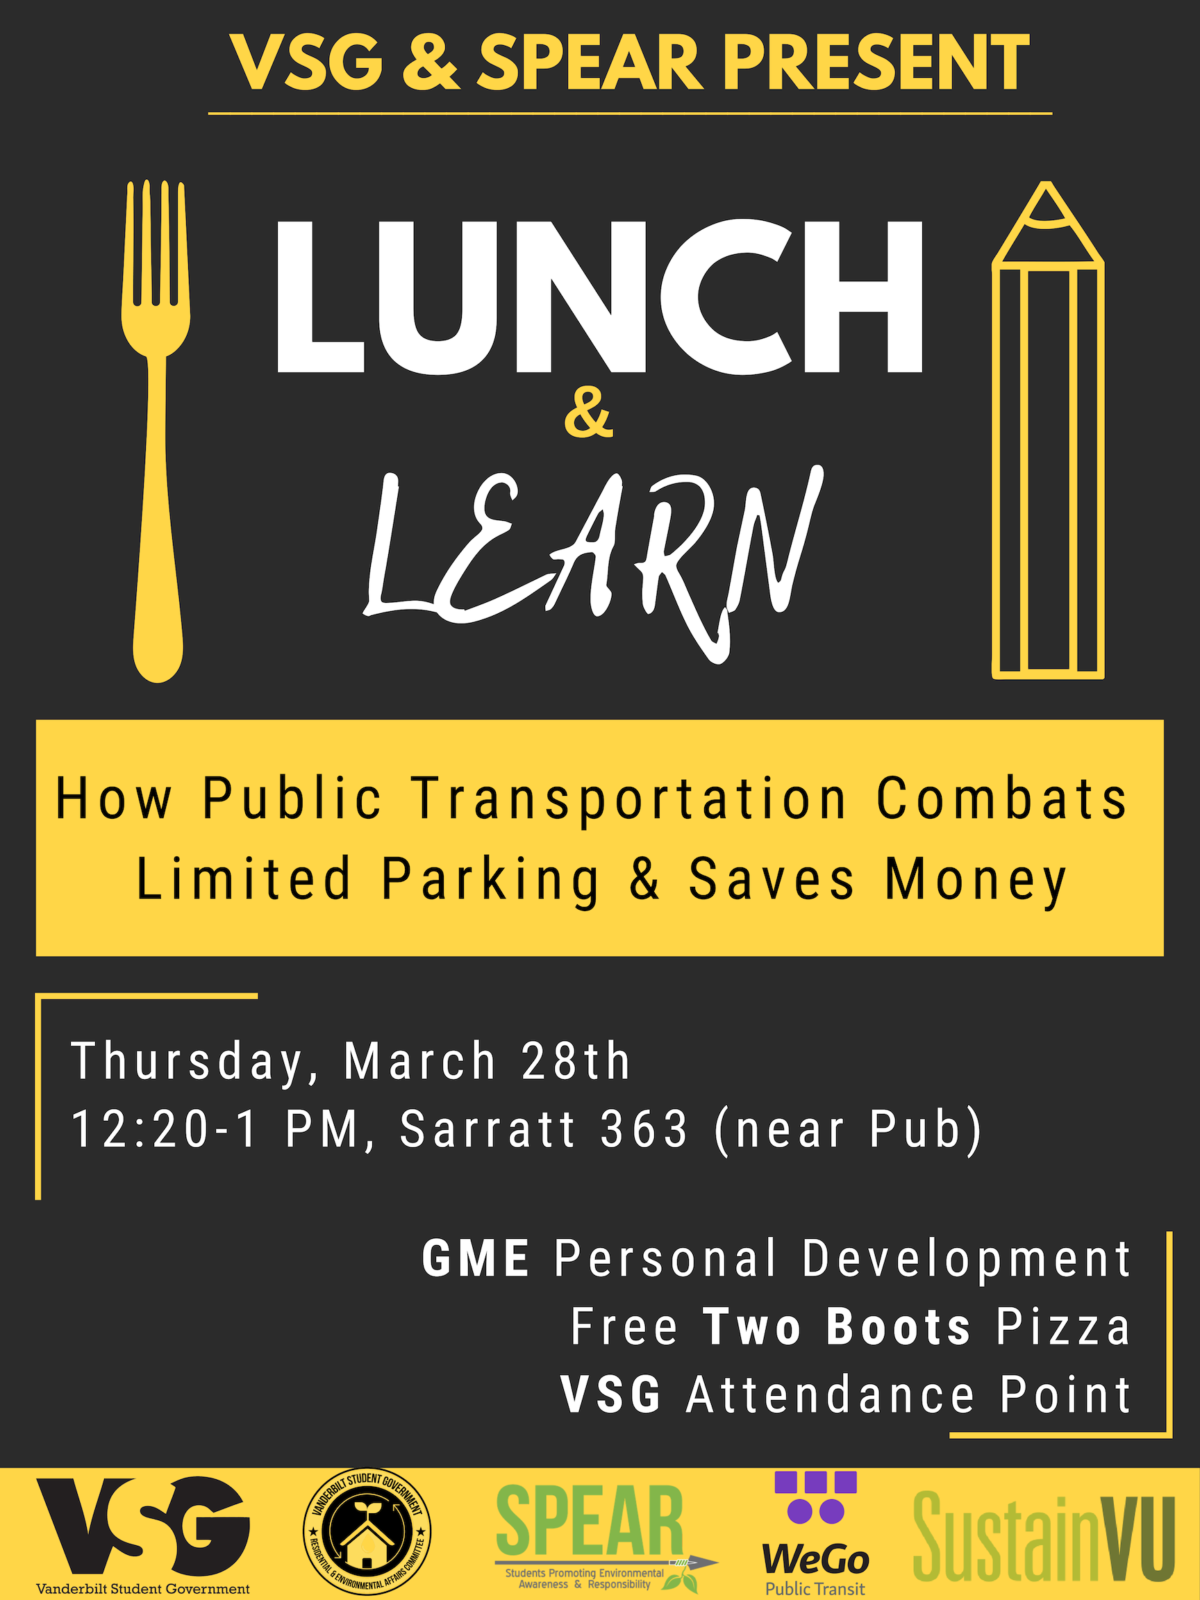 Lunch and Learn Public Transit Flyer